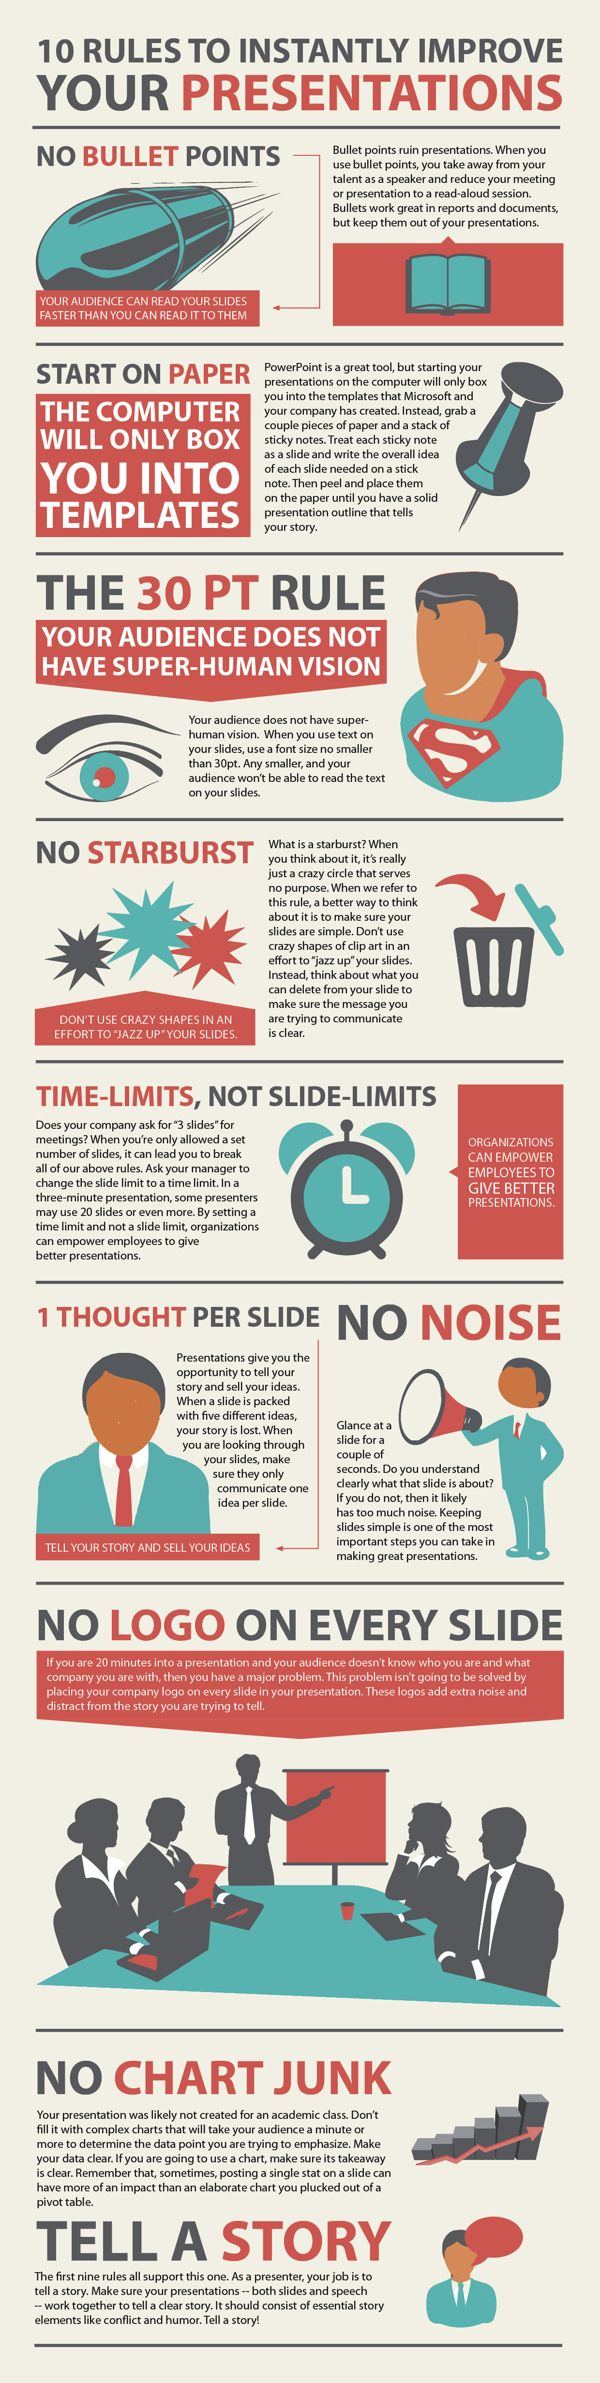 10 Rules to Instantly Improve Your Presentations #Comunicación #sales #formación cc @anlsm30